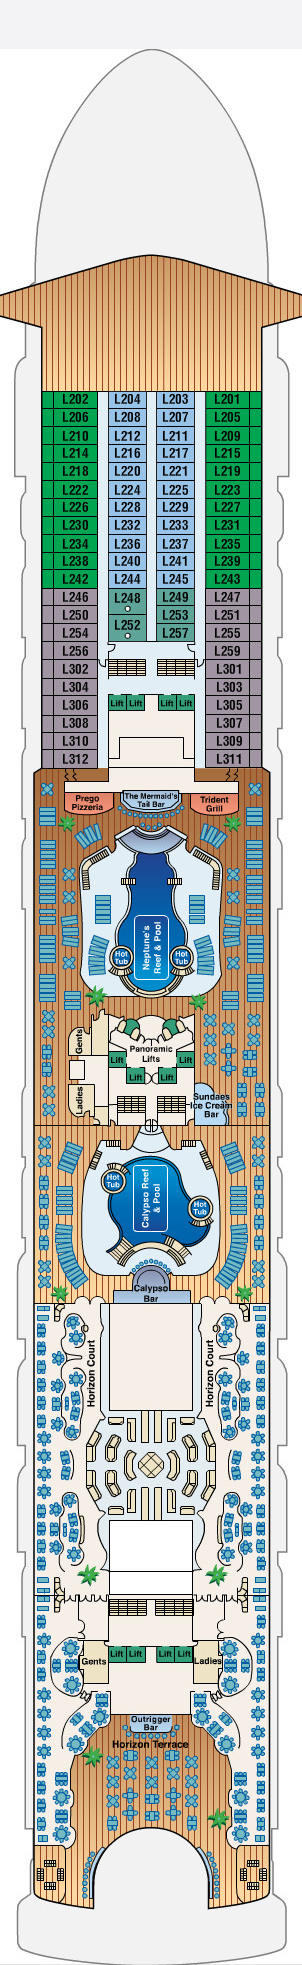 Golden Princess Lido Deck 14 layout